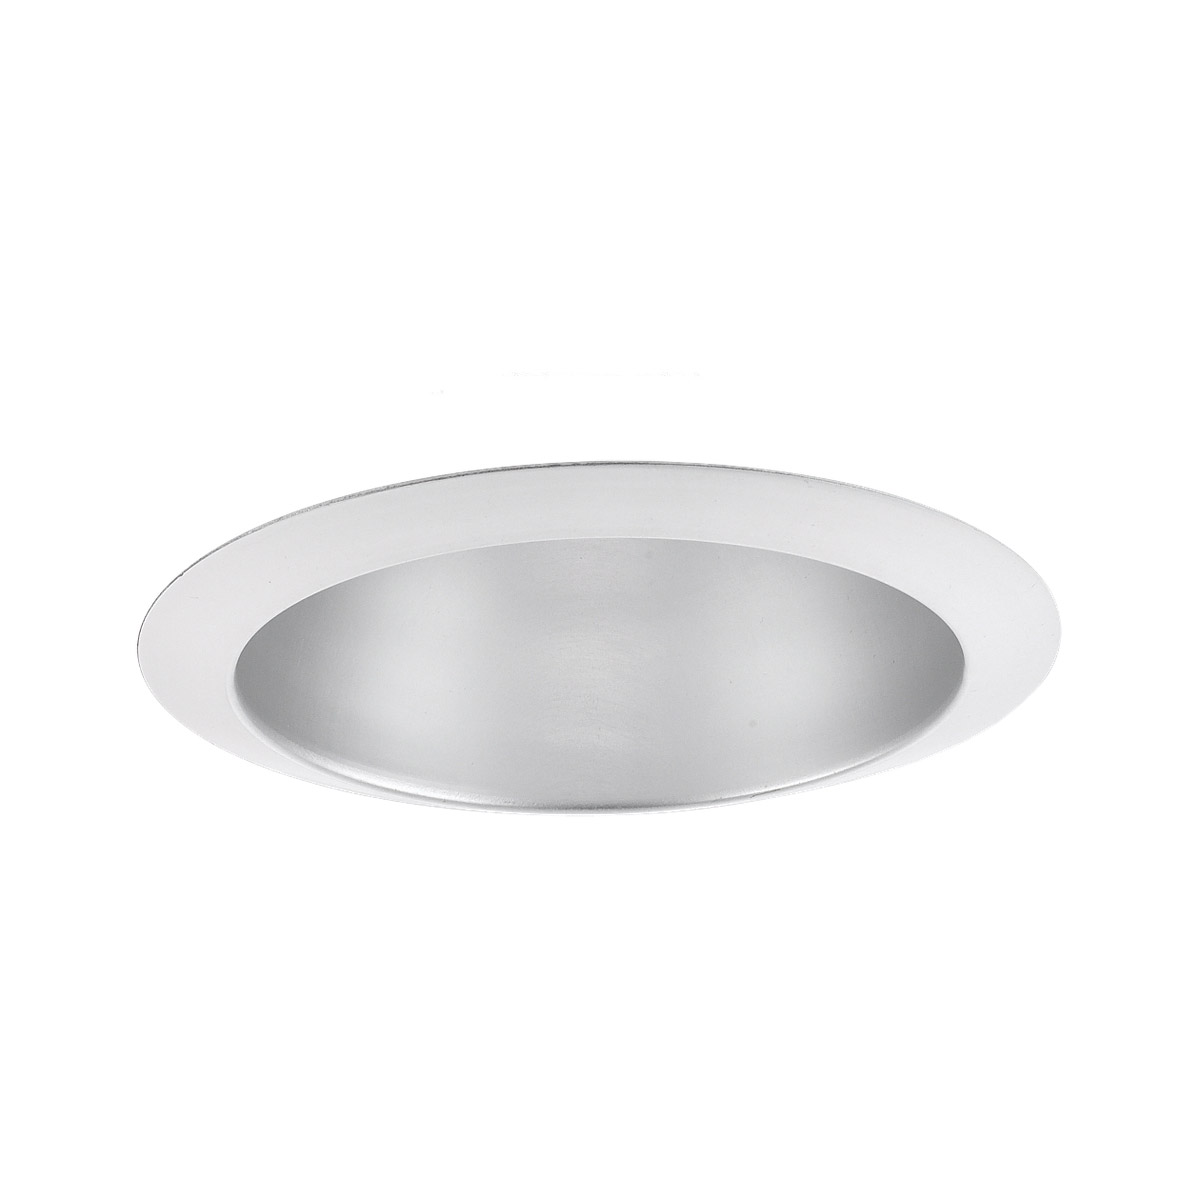 Sea Gull Lighting Signature Recessed Trim Only in Satin Nickel 11032AT-849